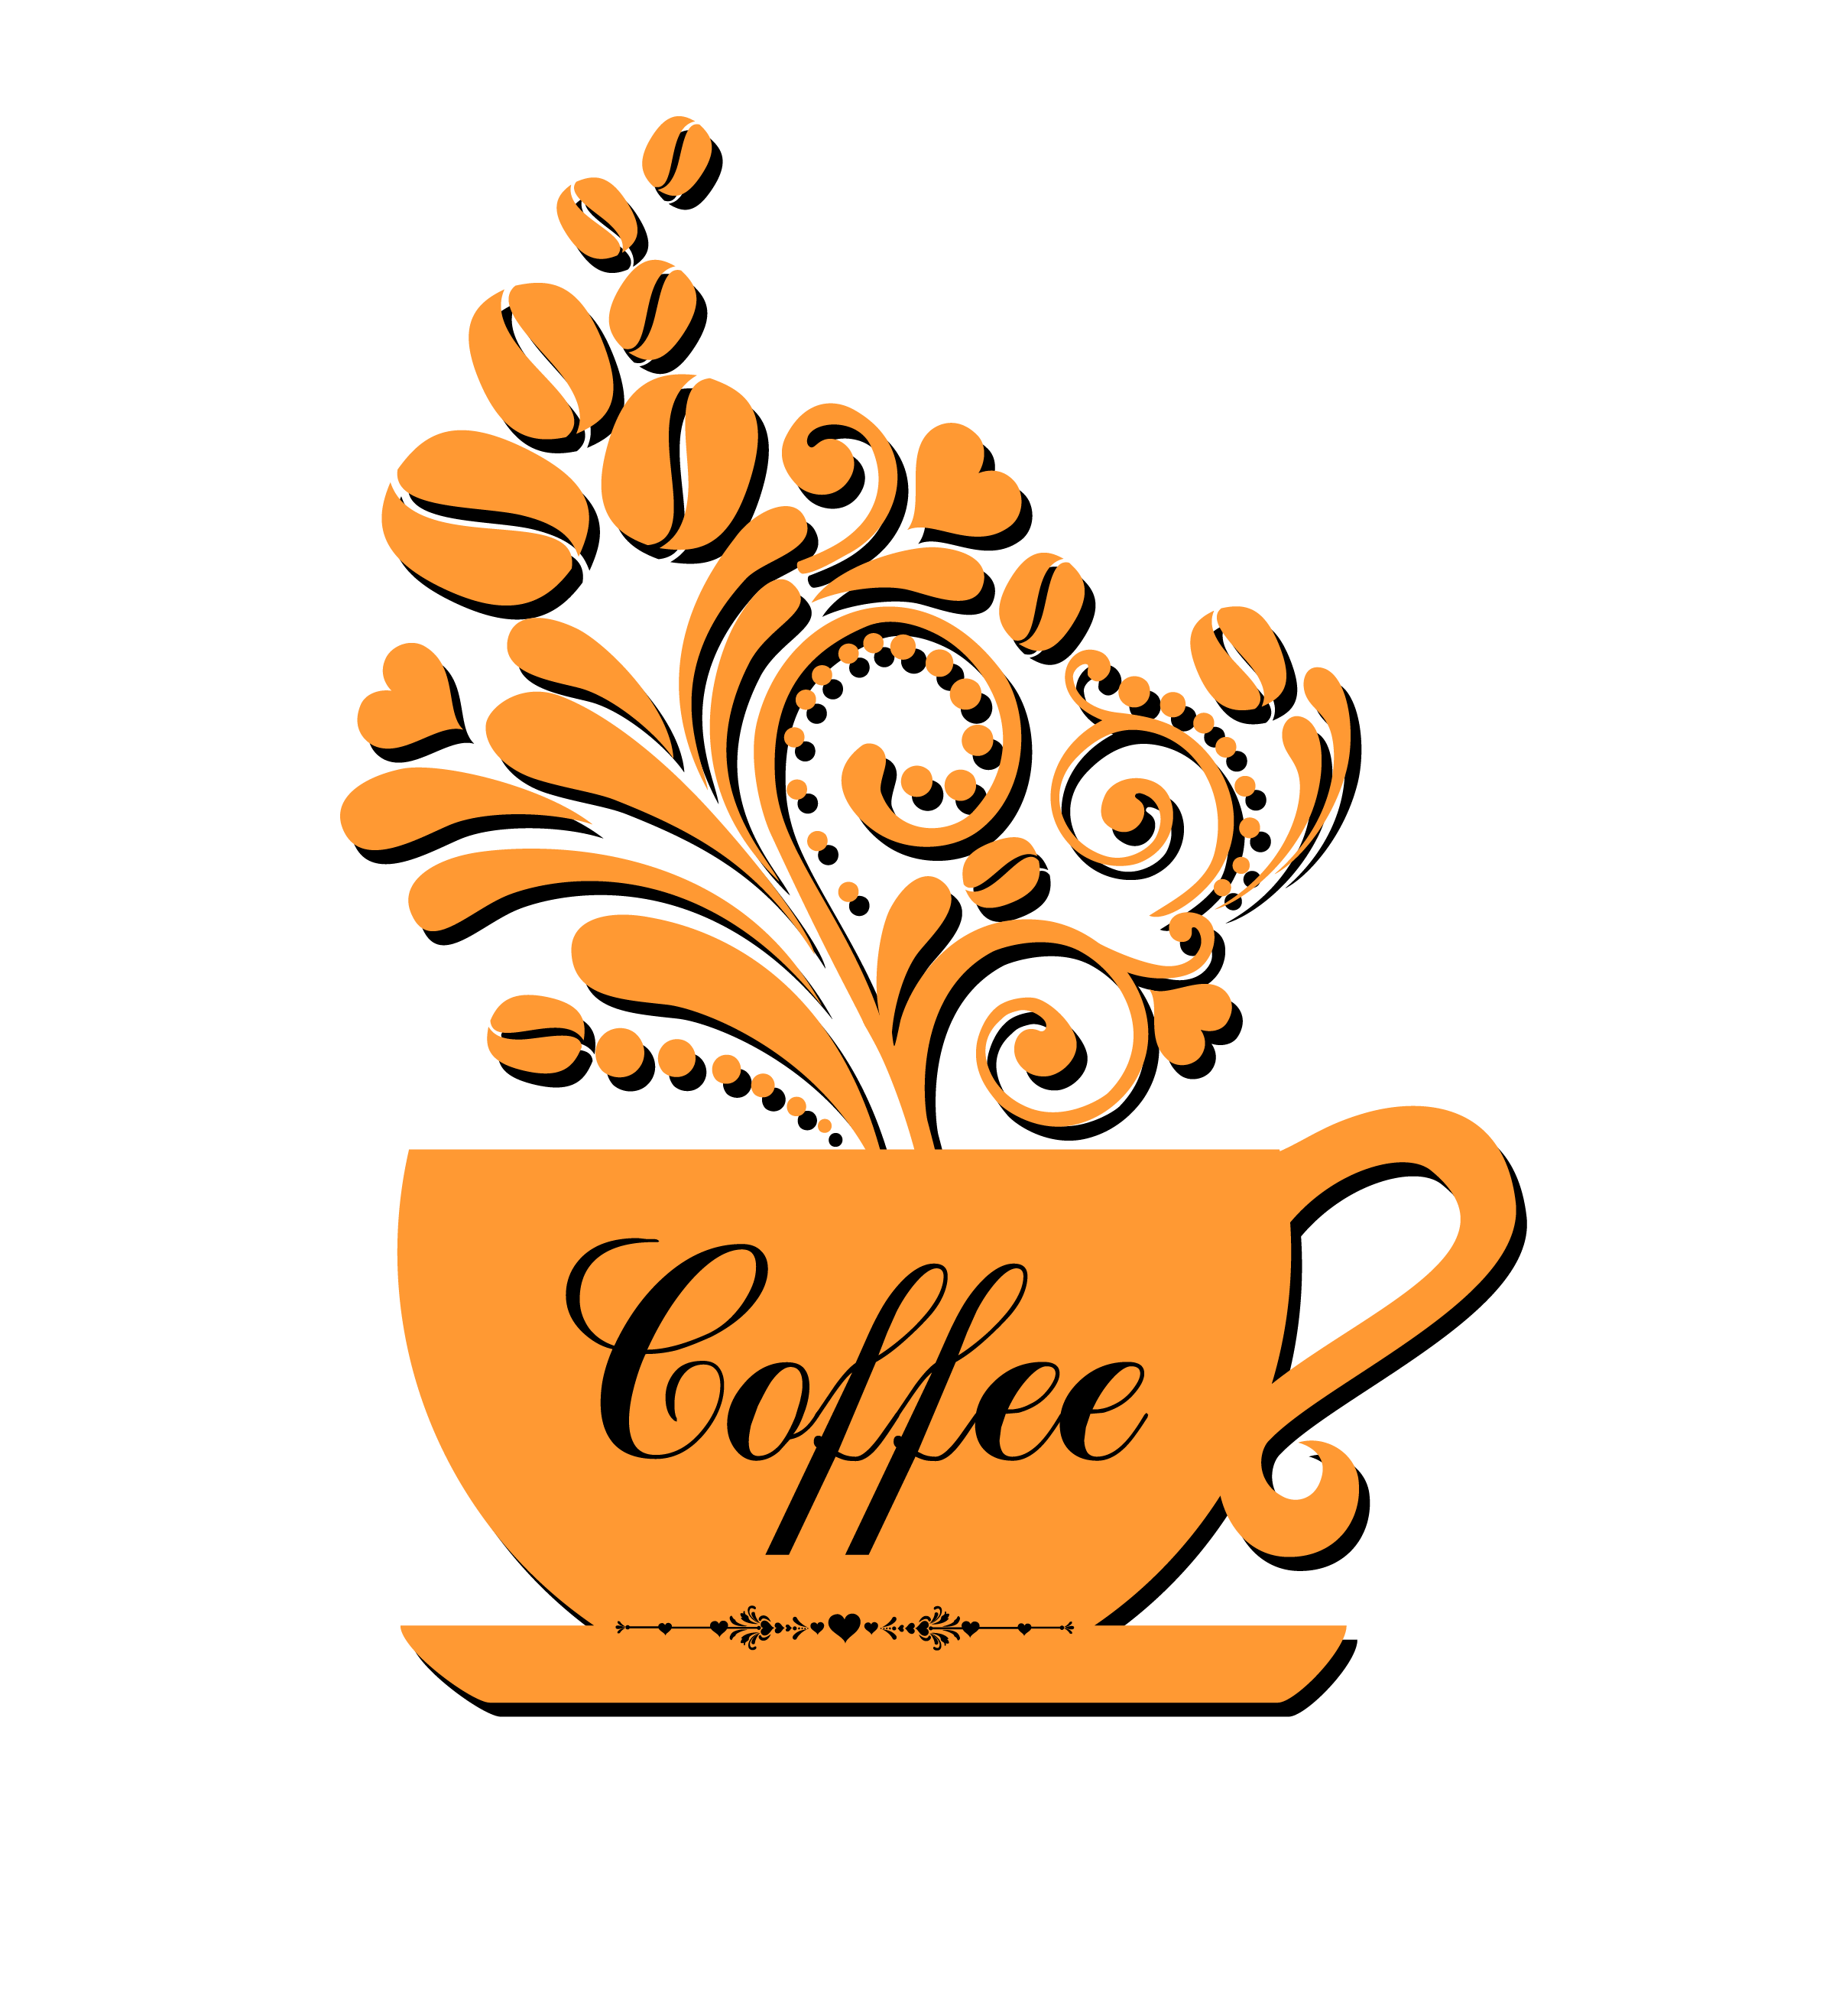 Coffee cup logo png. Transprent free download text